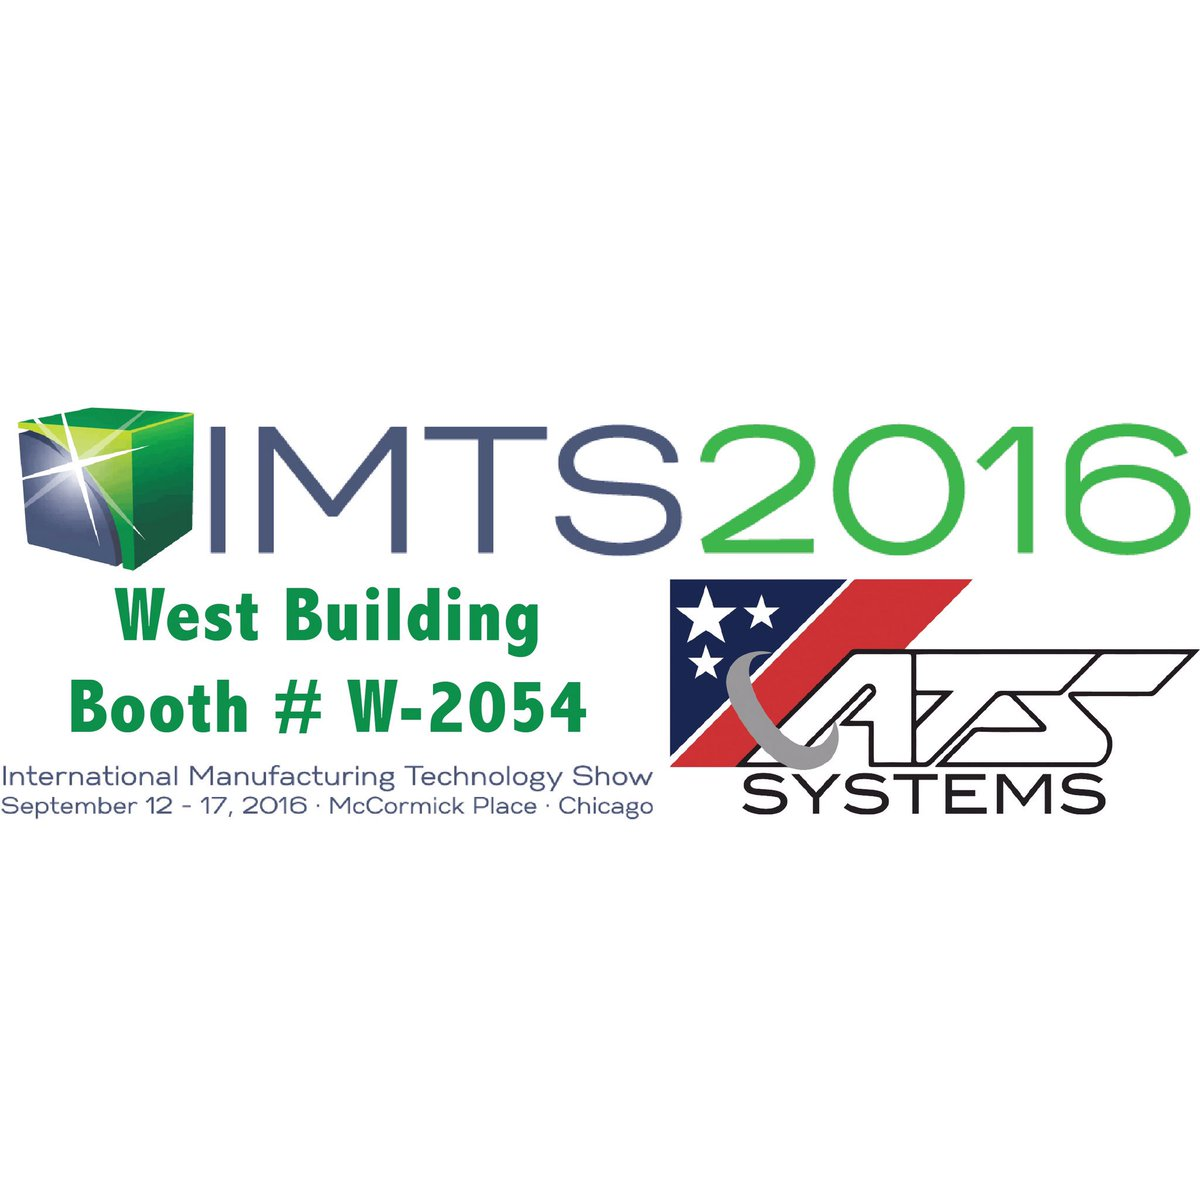 ats systems on twitter good morning chicago good morning imts ats systems on twitter good morning chicago good morning imts imts imts2016 workholding automation highpressurecoolant t co nqjknre9ic